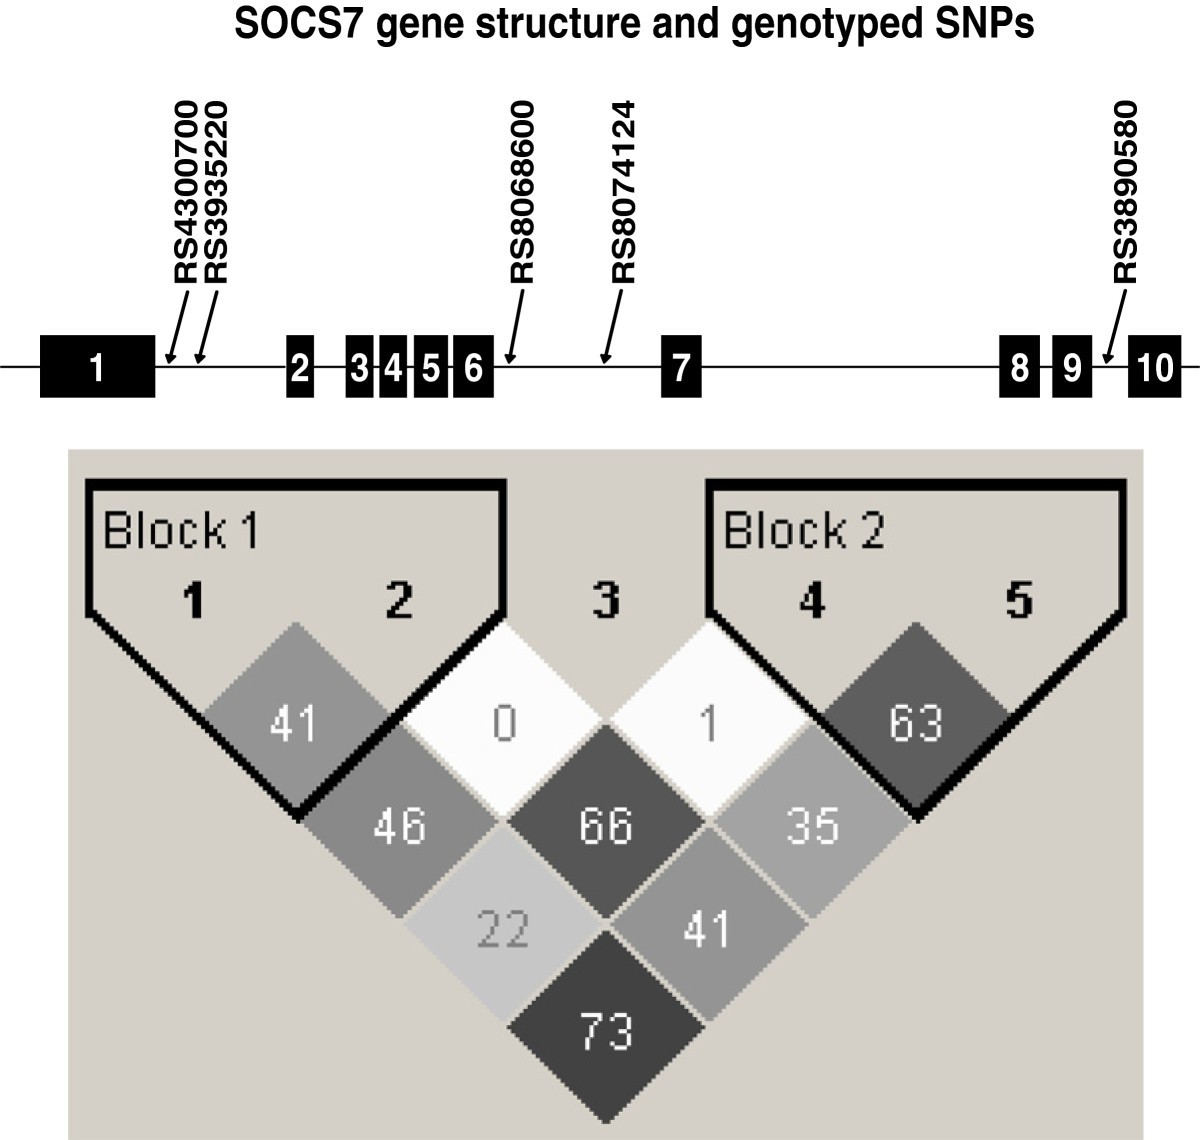 Polymorphisms In The Socs7 Gene And Glucose Homeostasis Traits Bmc Block Diagram Games Figure 1